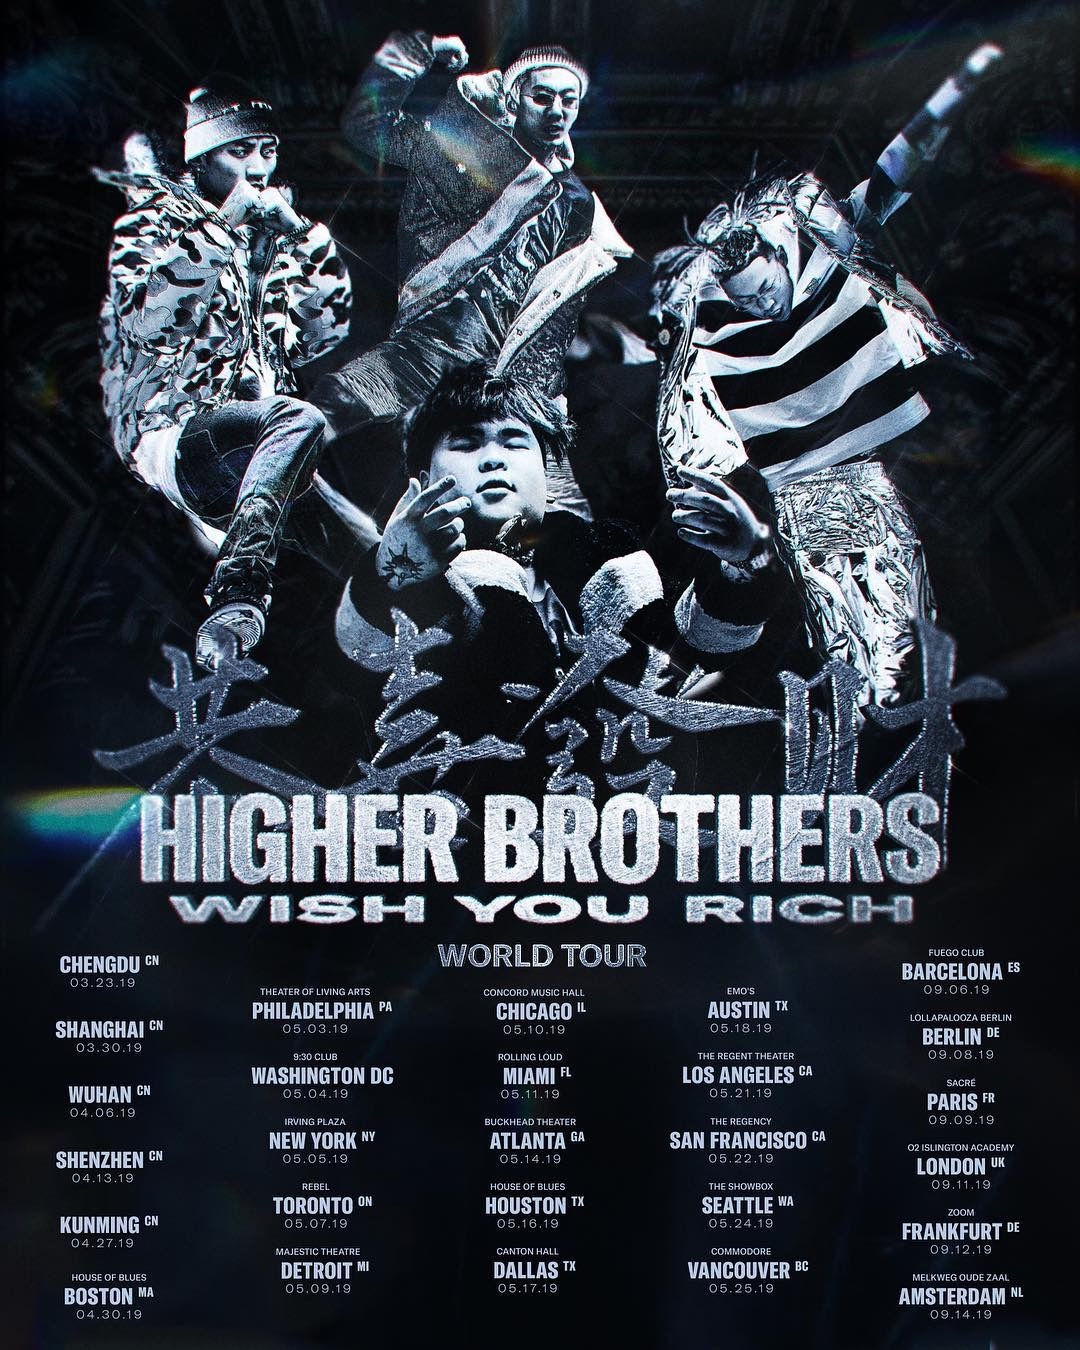 Higher Brothers 世界巡演即將啓動